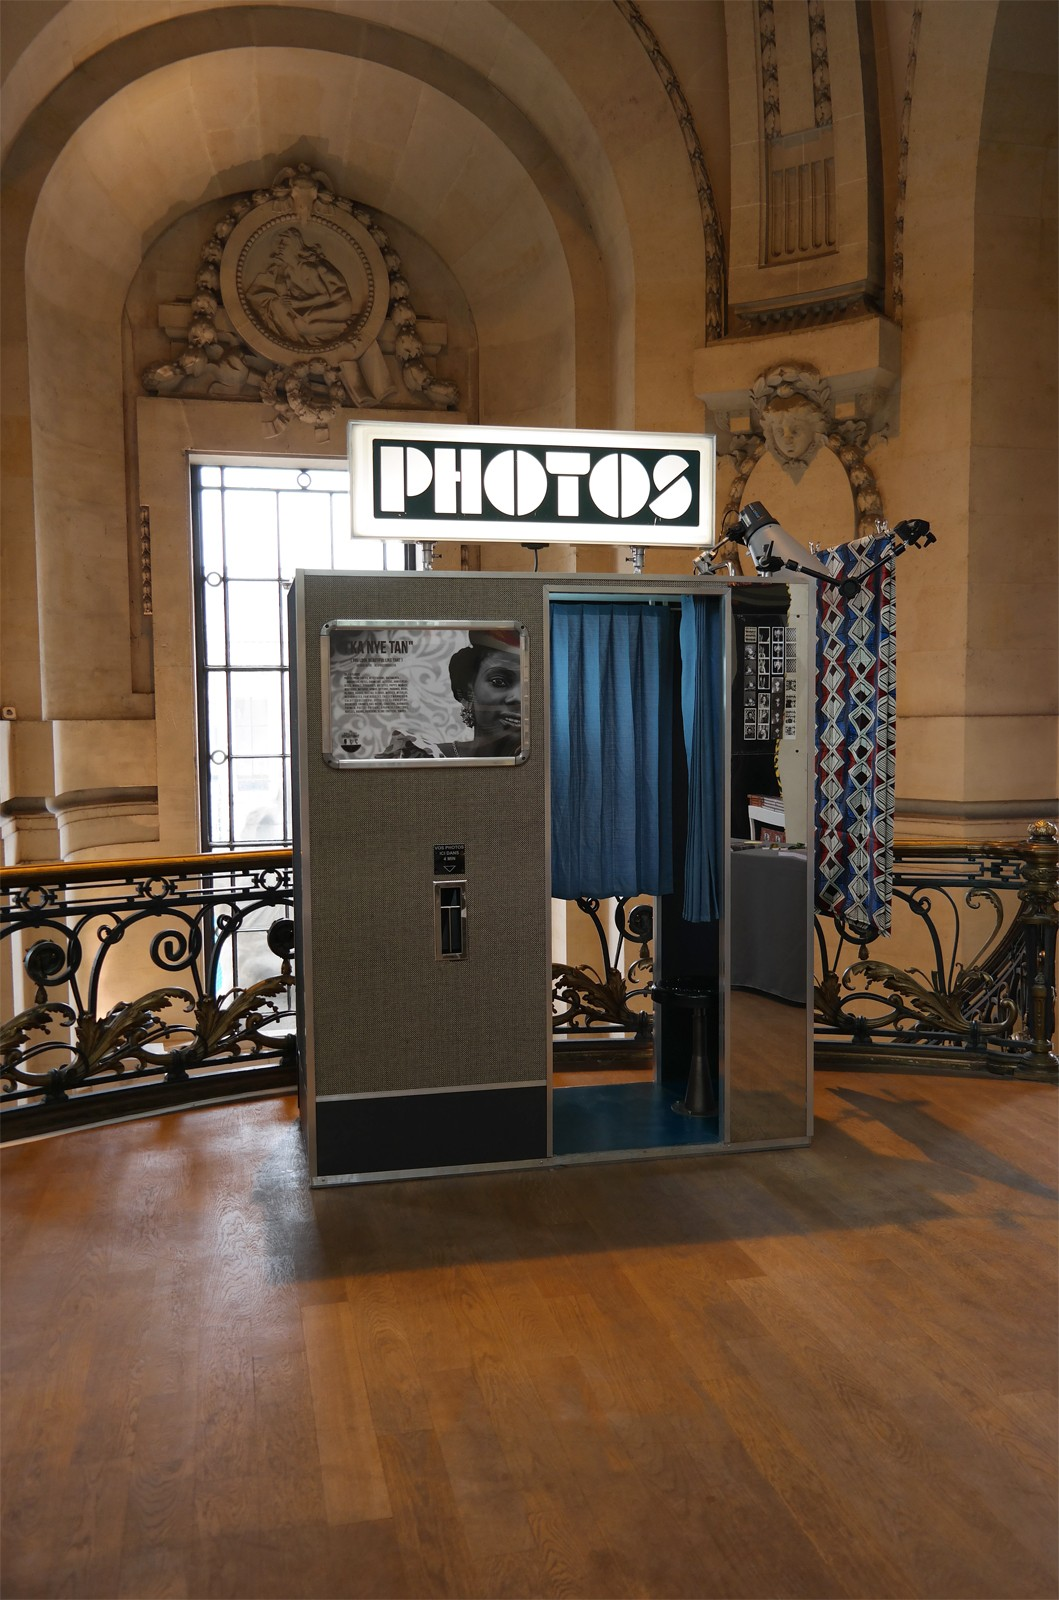 Exposition photographe Seydou Keïta Grand Palais Paris photomaton original vintage et argentique cabine fotoautomat choix de fonds et filtres Galeries nationales photo usofparis blog